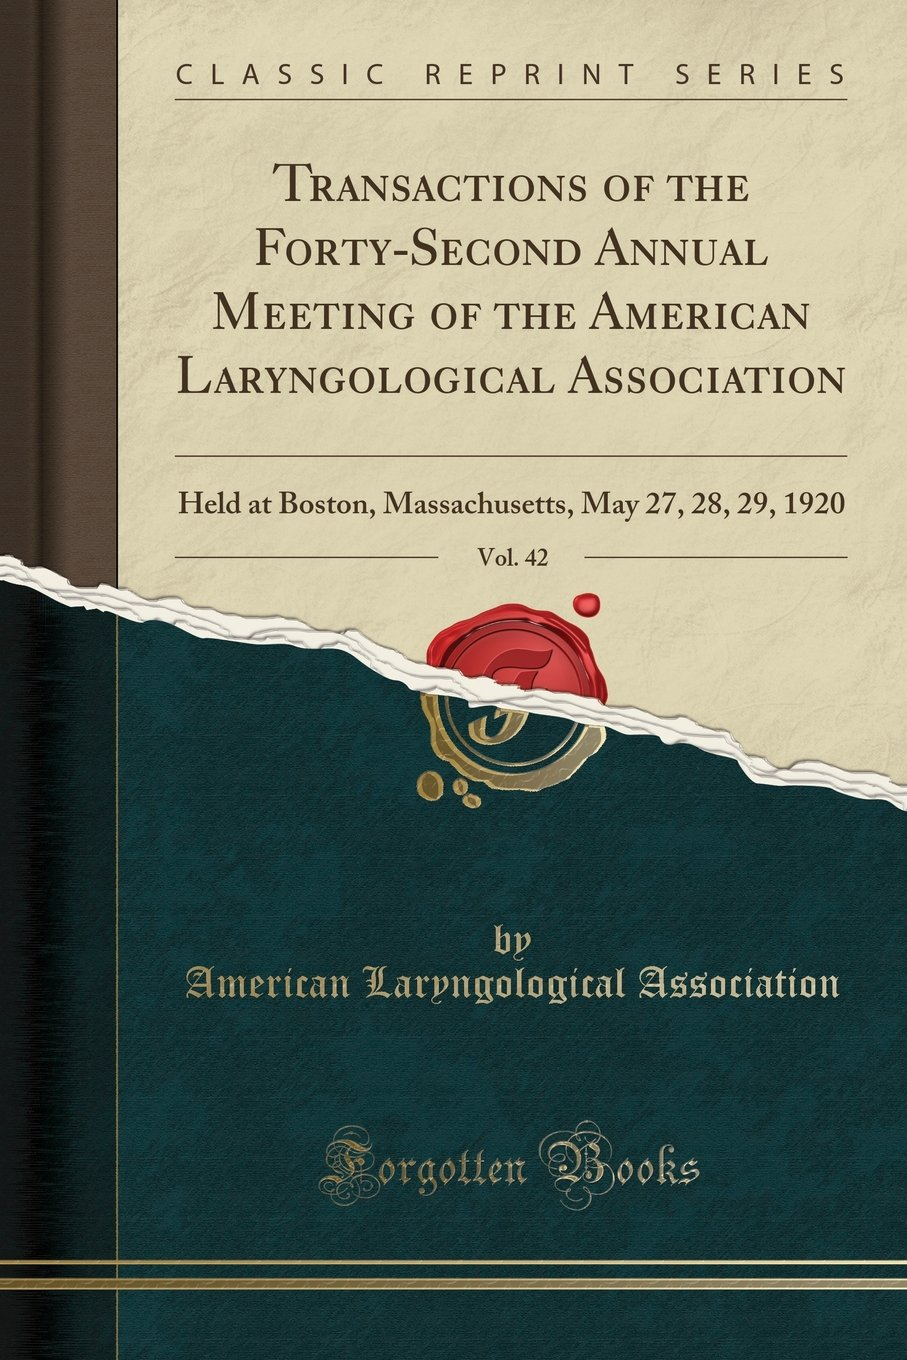 Download Transactions of the Forty-Second Annual Meeting of the American Laryngological Association, Vol. 42: Held at Boston, Massachusetts, May 27, 28, 29, 1920 (Classic Reprint) PDF